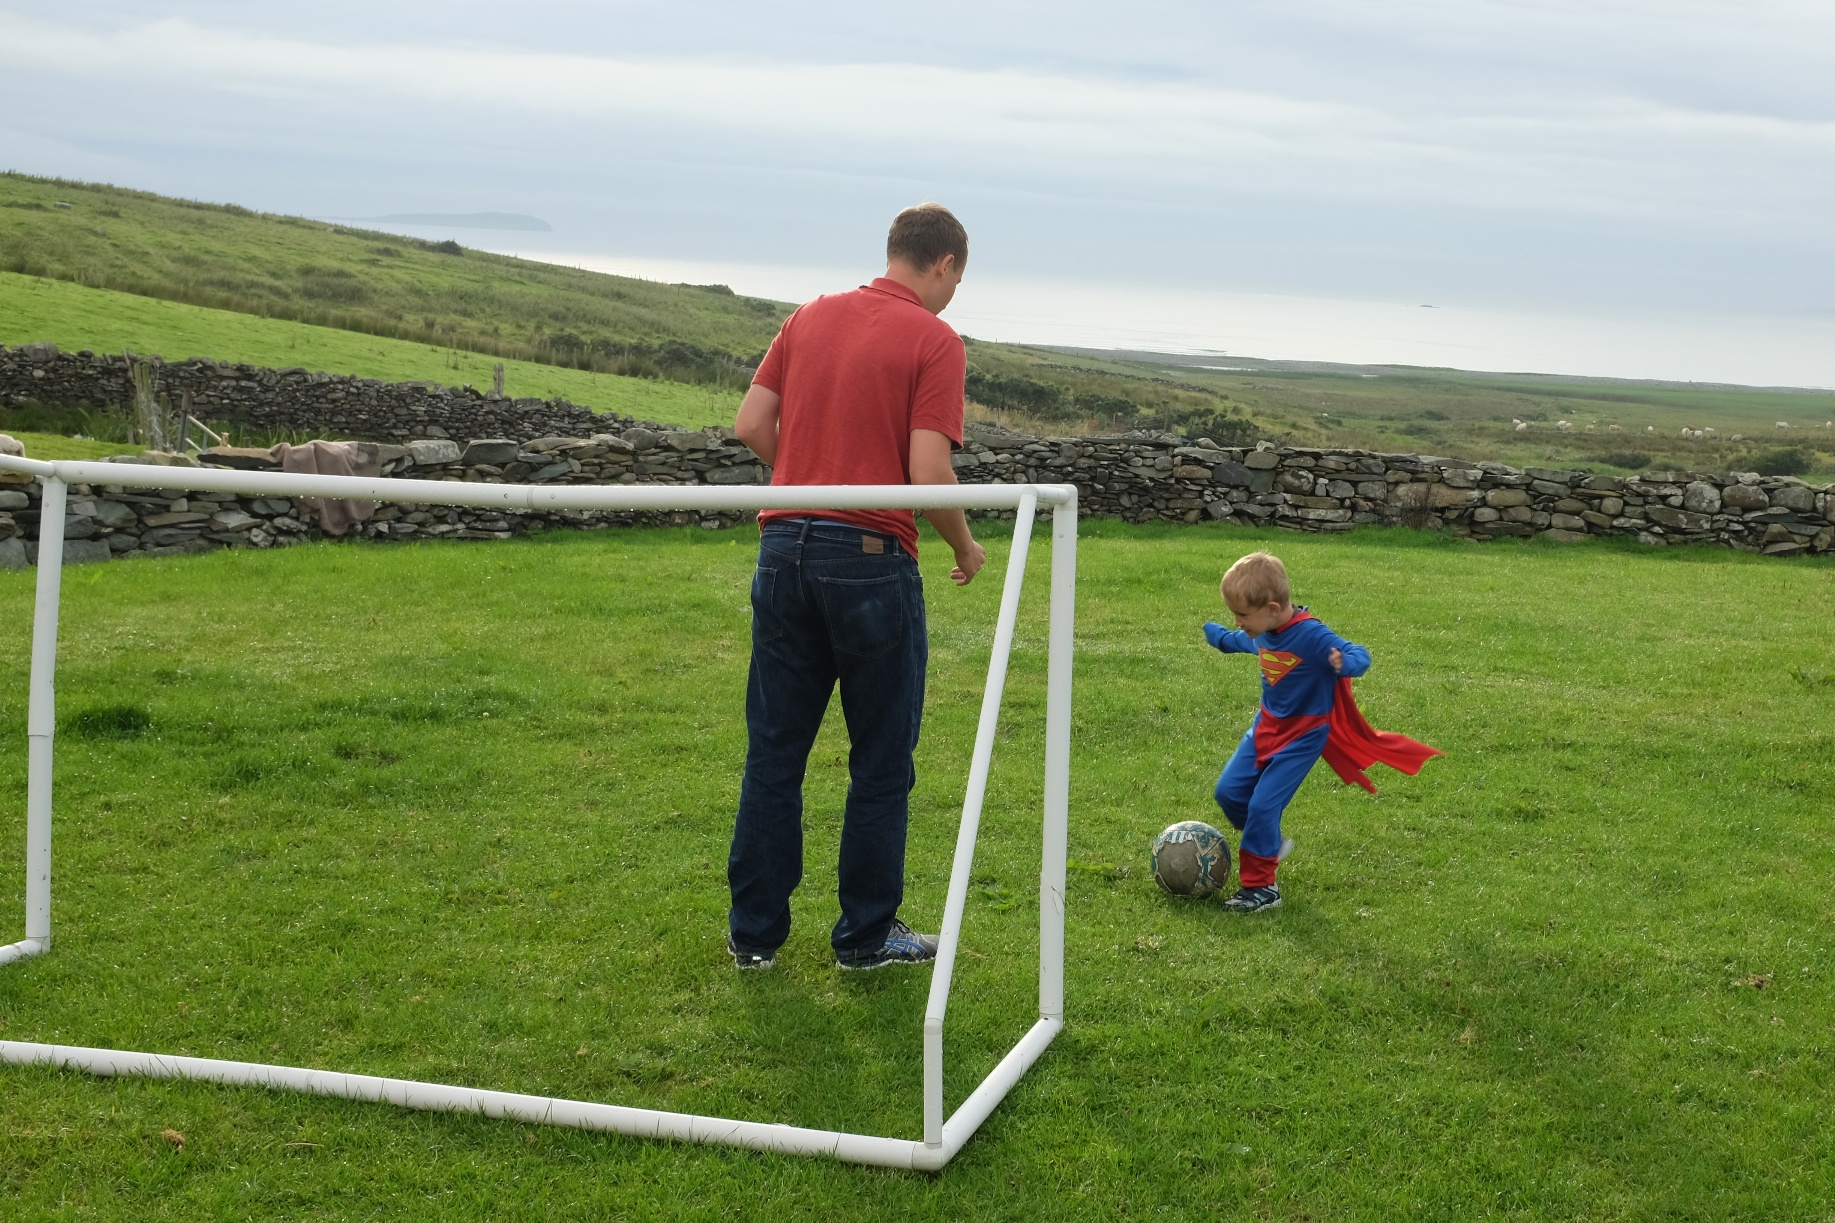 Superman getting ready to kick the ball.. it's never a fair match when you're up against Superman!